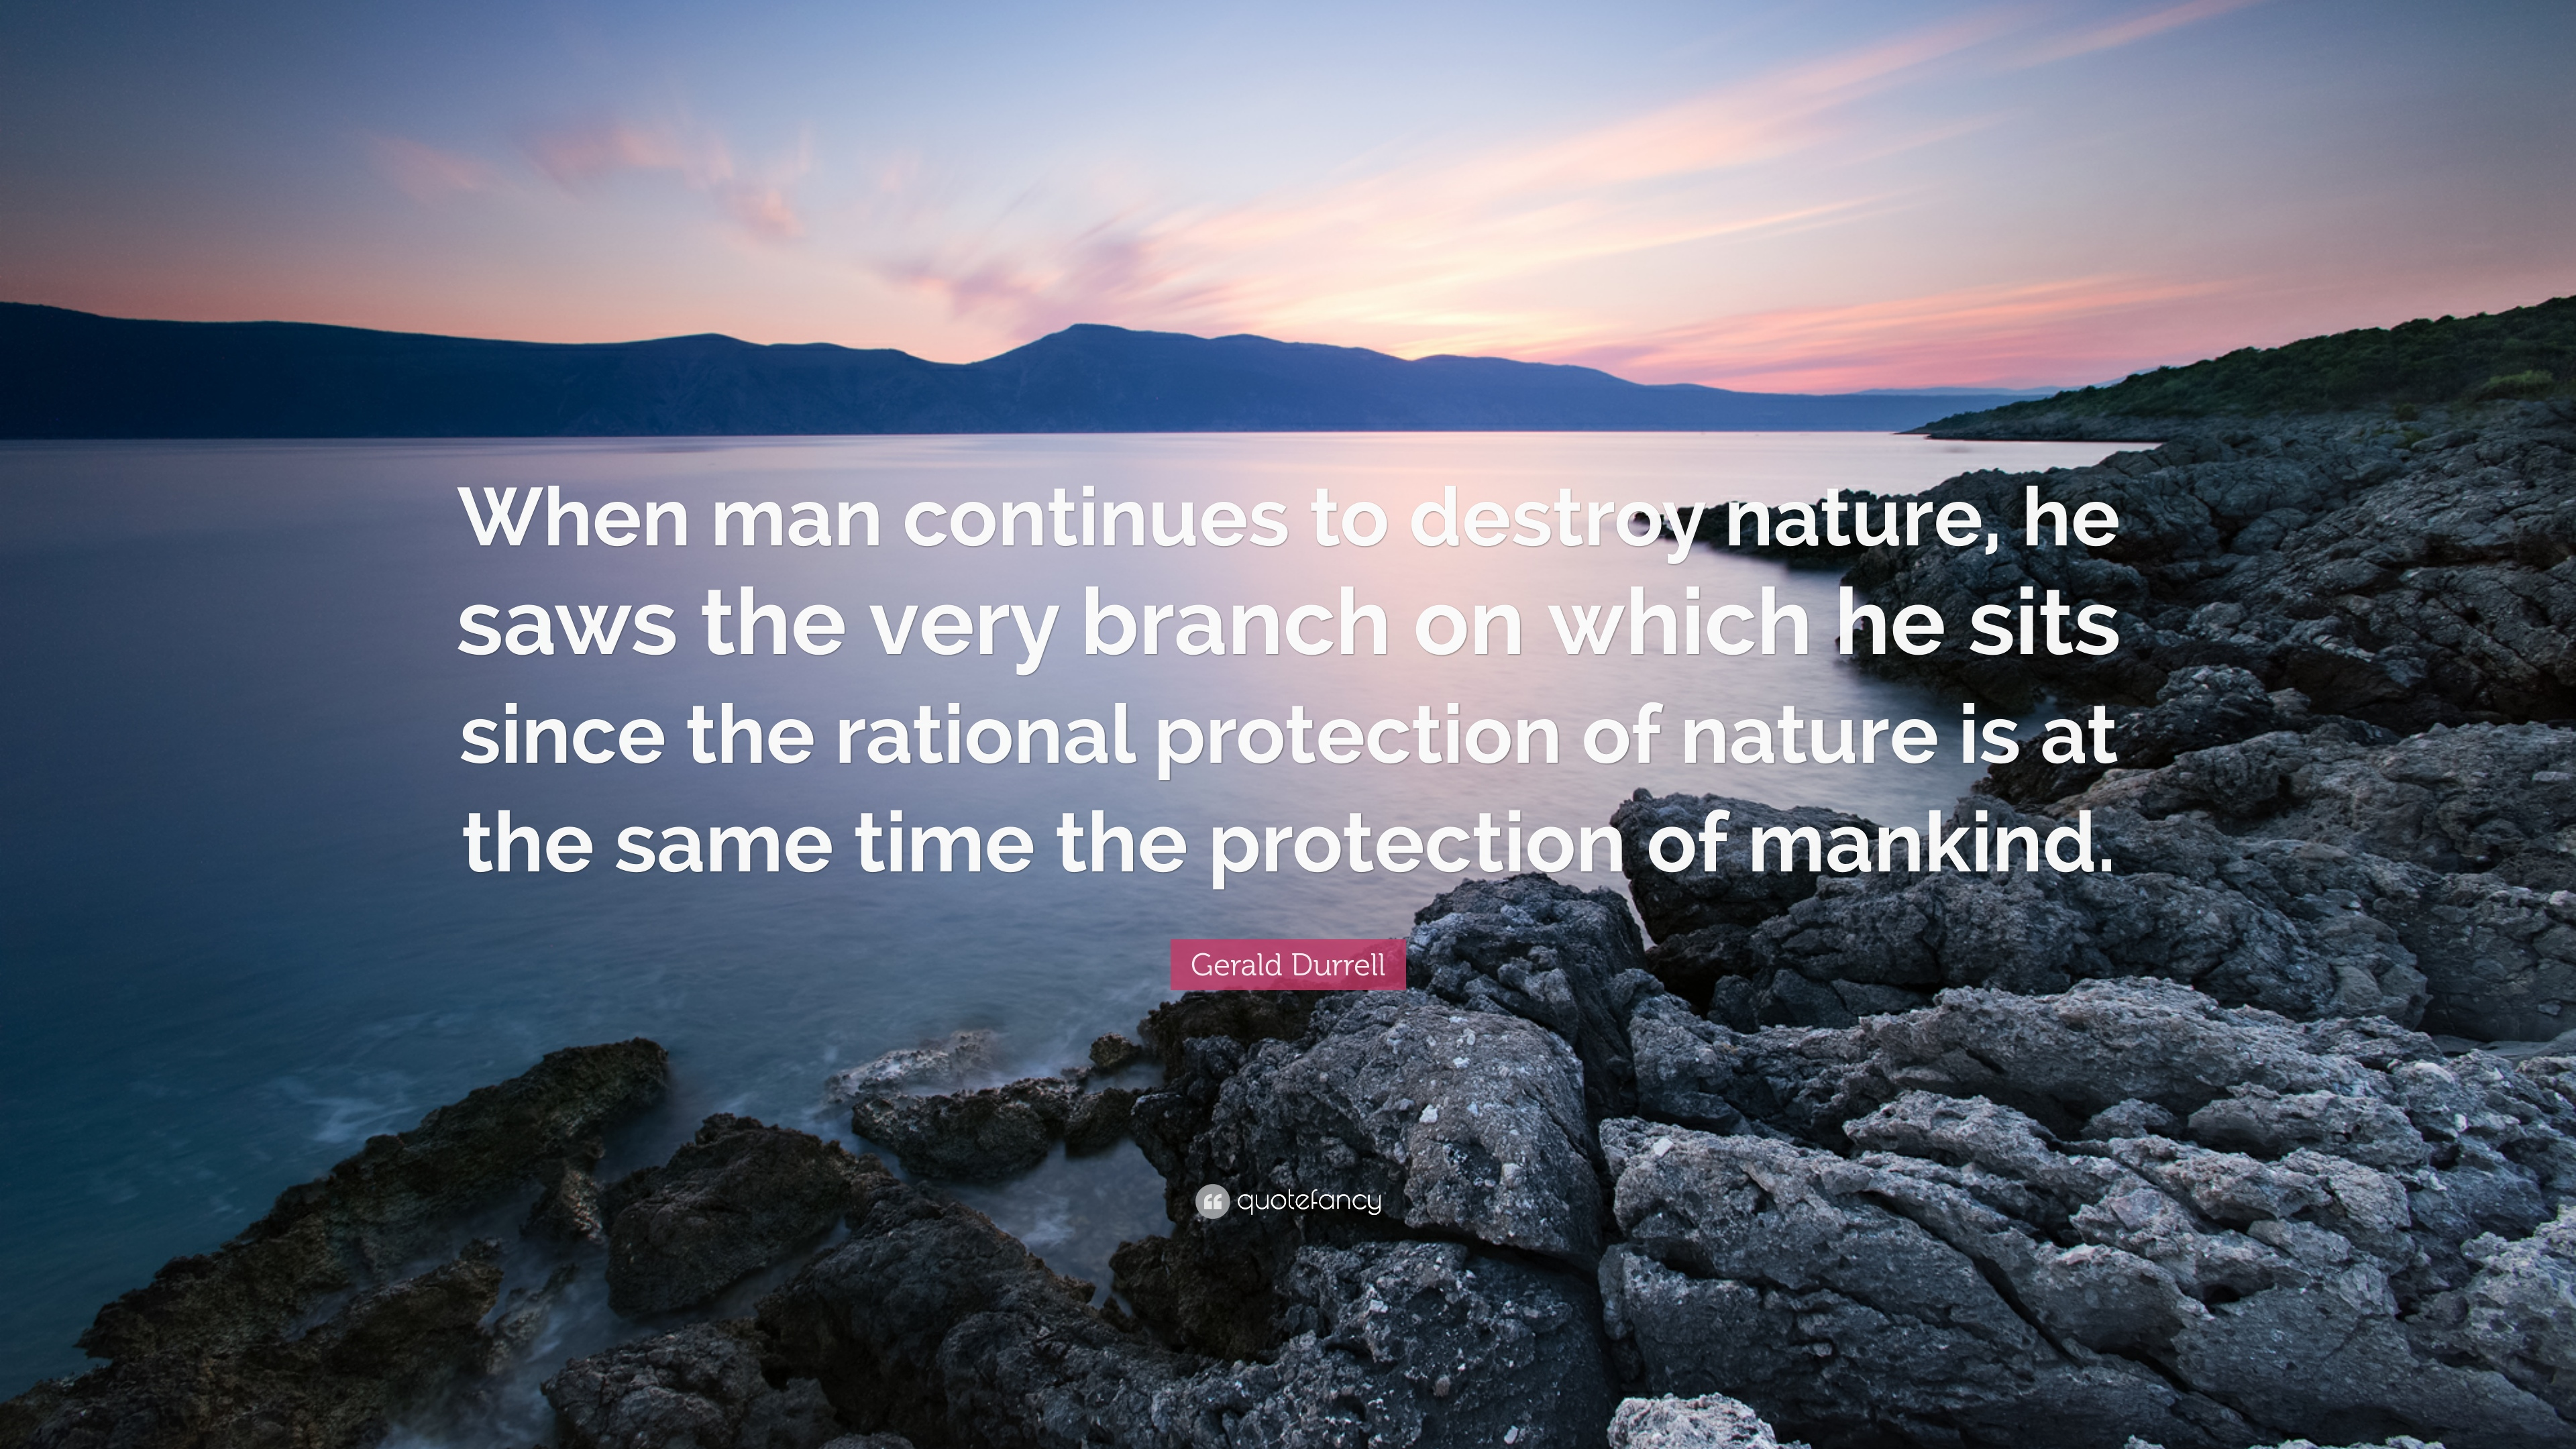 Gerald Durrell Quotes 20 Wallpapers Quotefancy